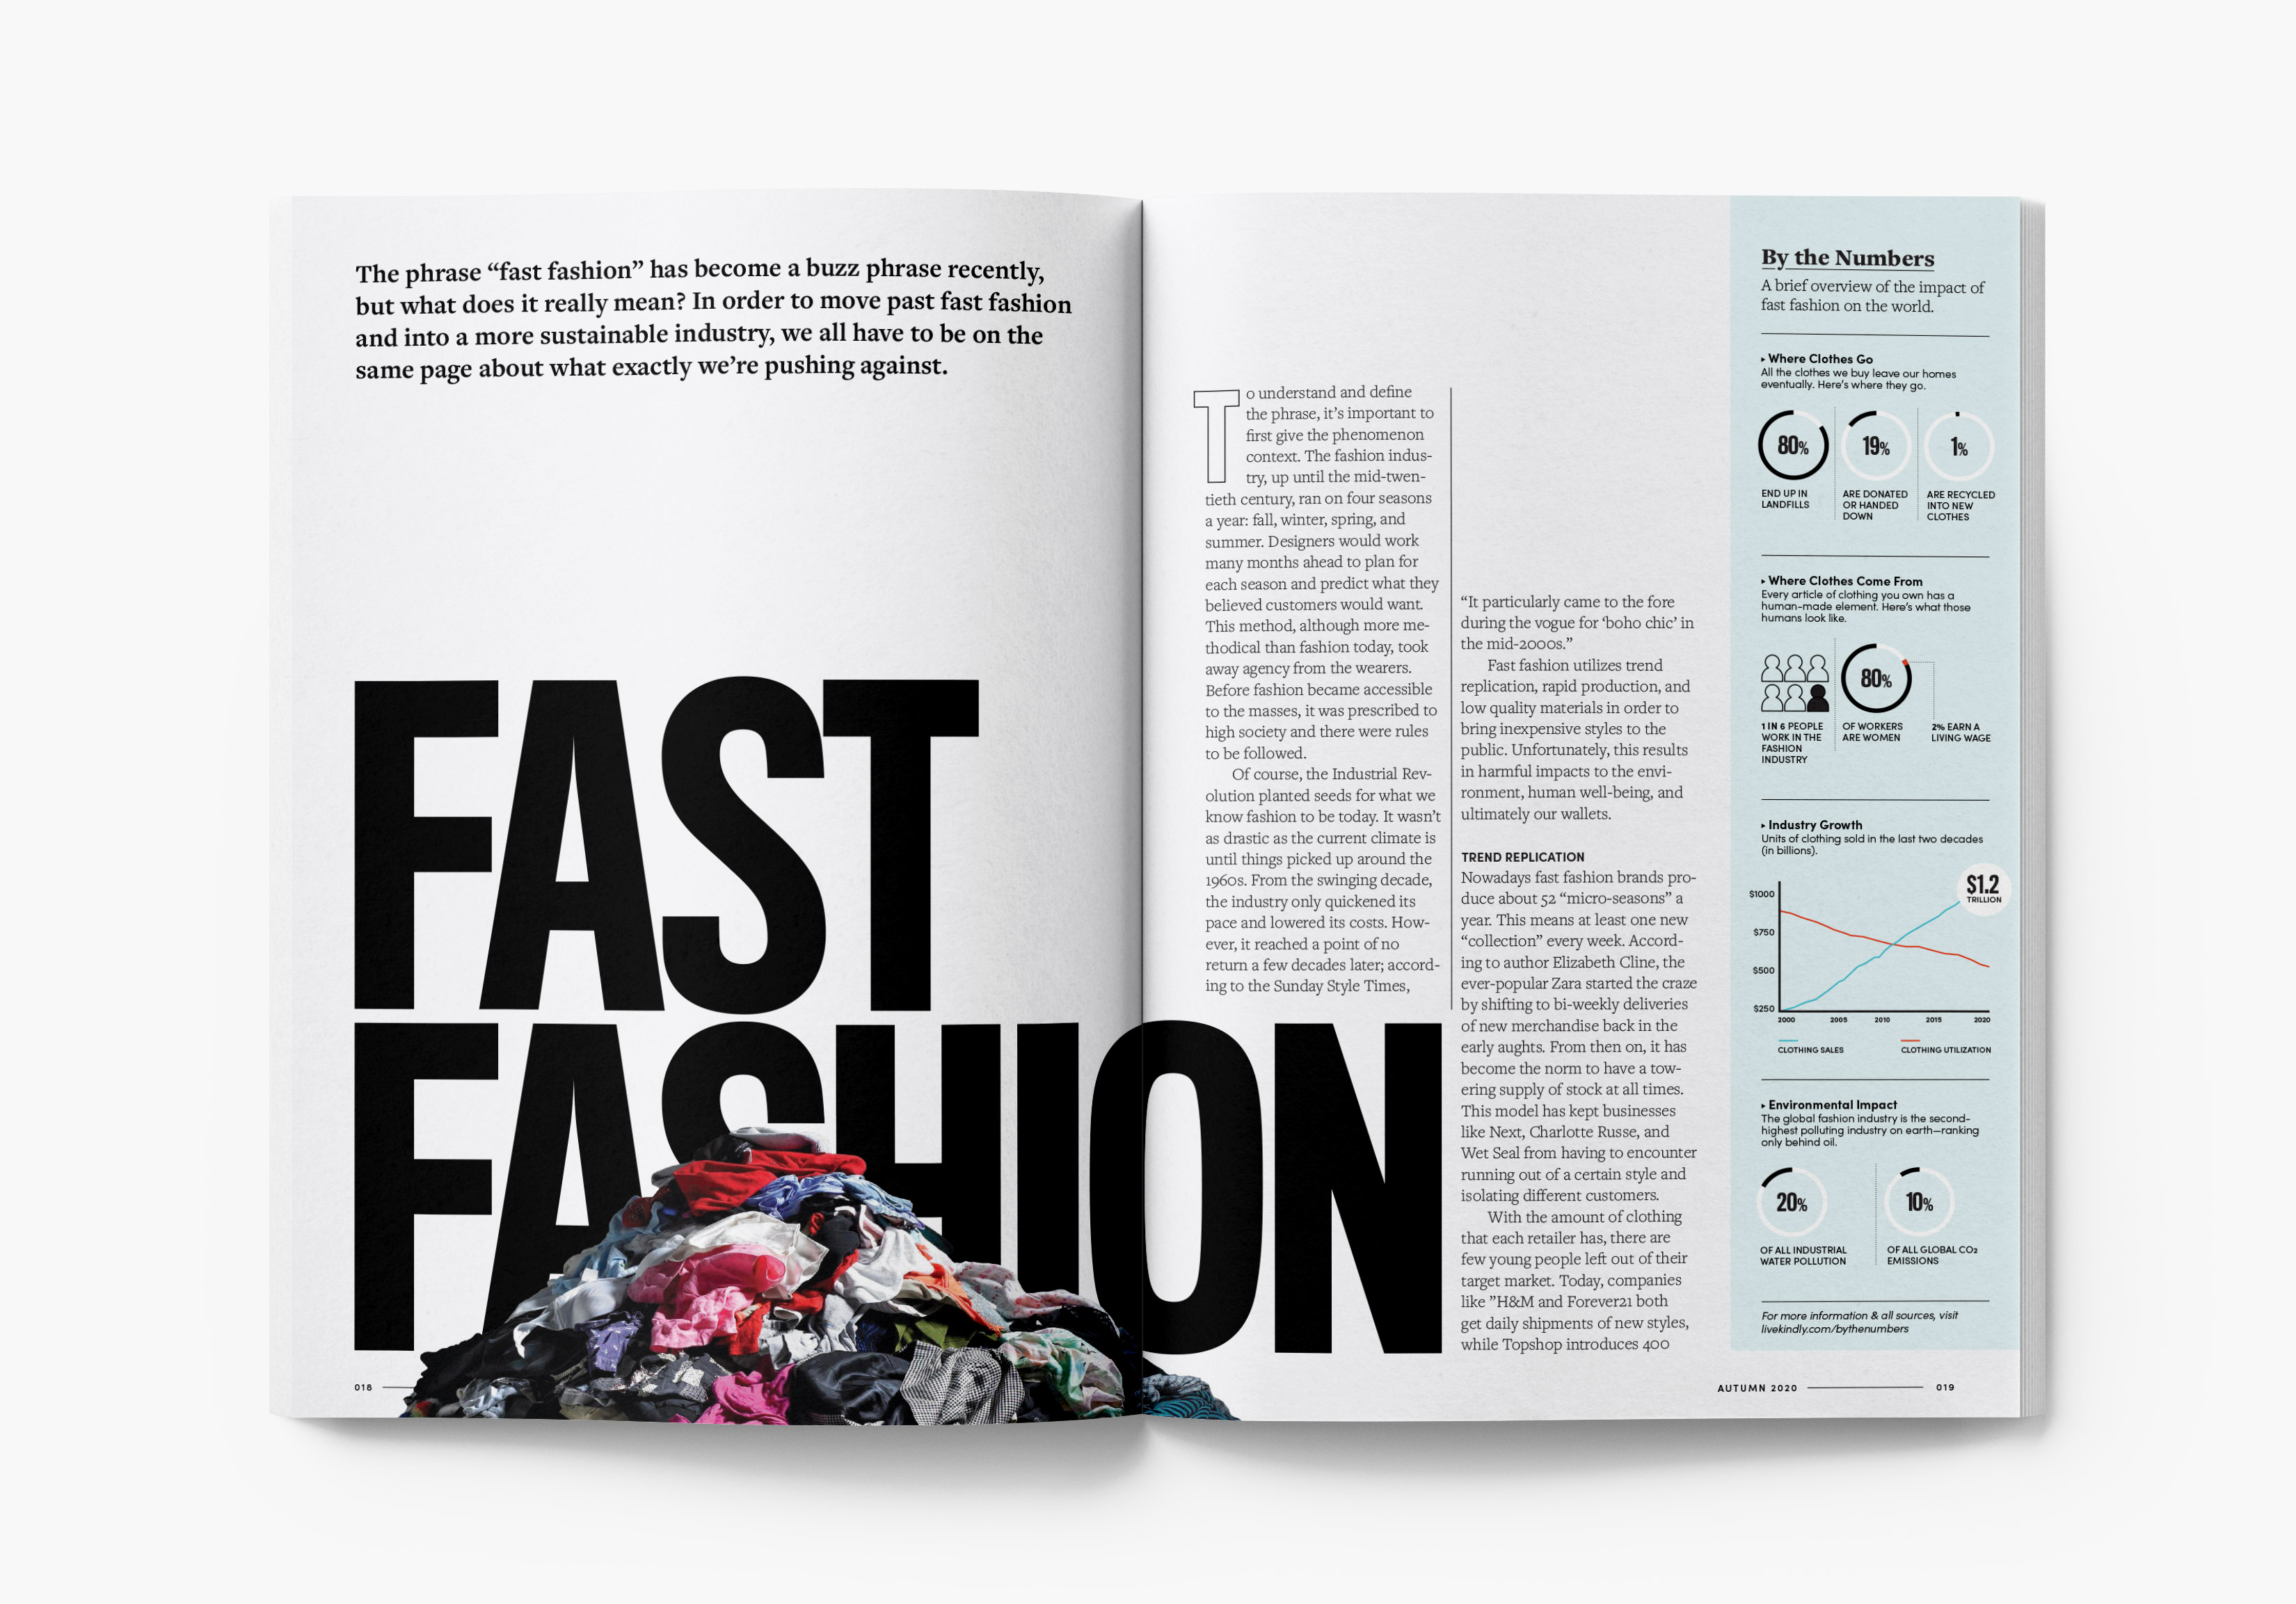 Magazine editorial spread on the effects of fast fashion on the planet